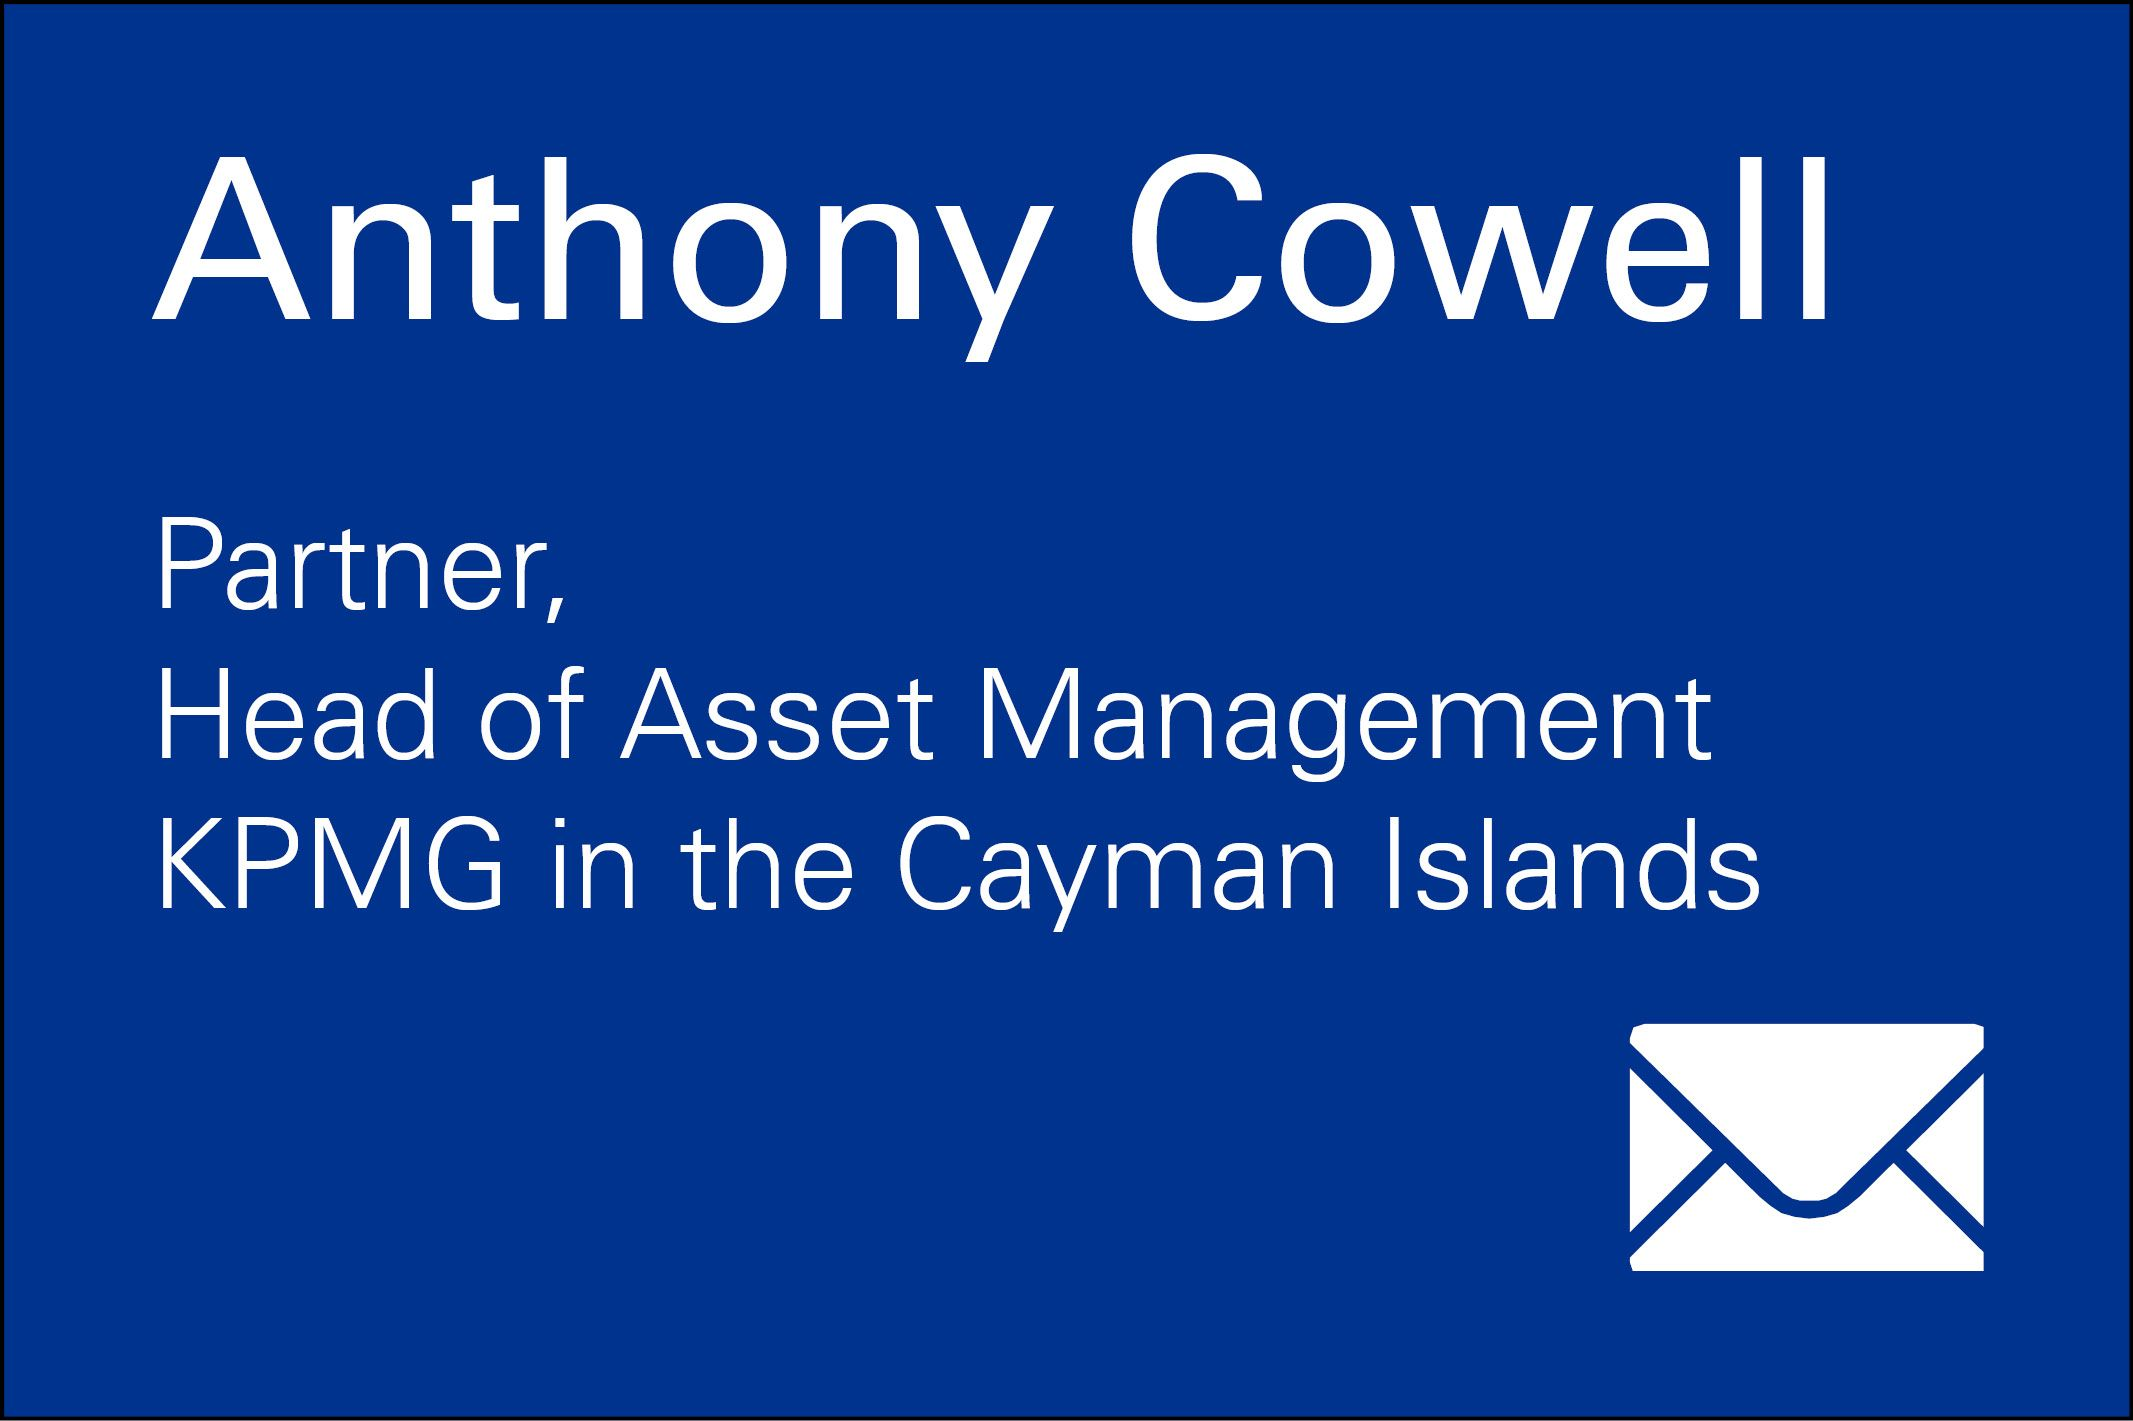 Mail to: Anthony Cowell